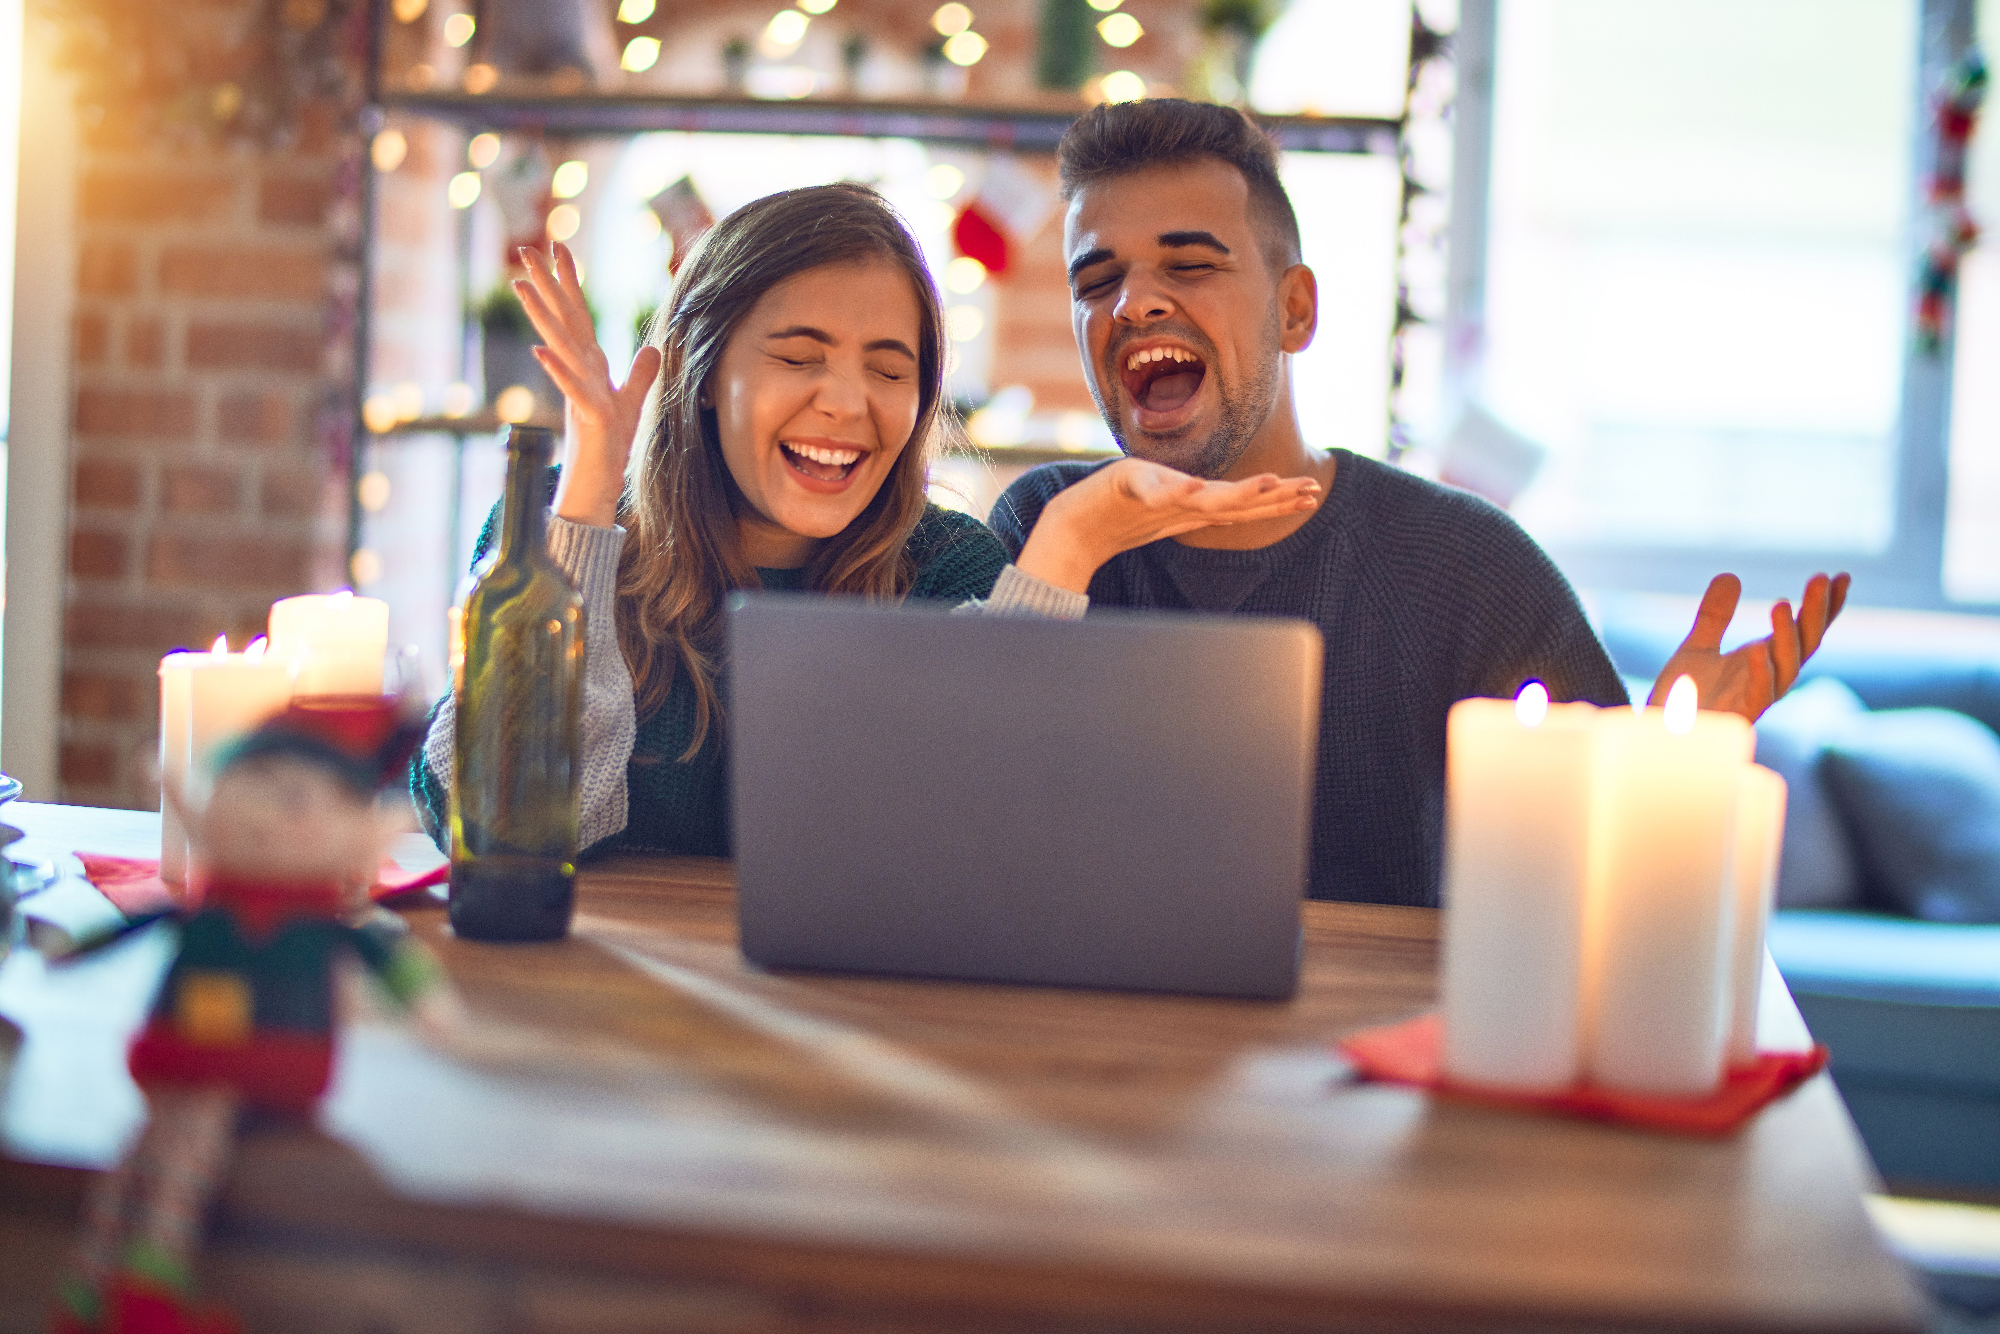 Young Beautiful Couple Sitting Using Laptop Around Christmas Decoration At Home Celebrating Mad And Crazy For Success With Arms Raised And Closed Eyes Screaming Excited. Winner Concept